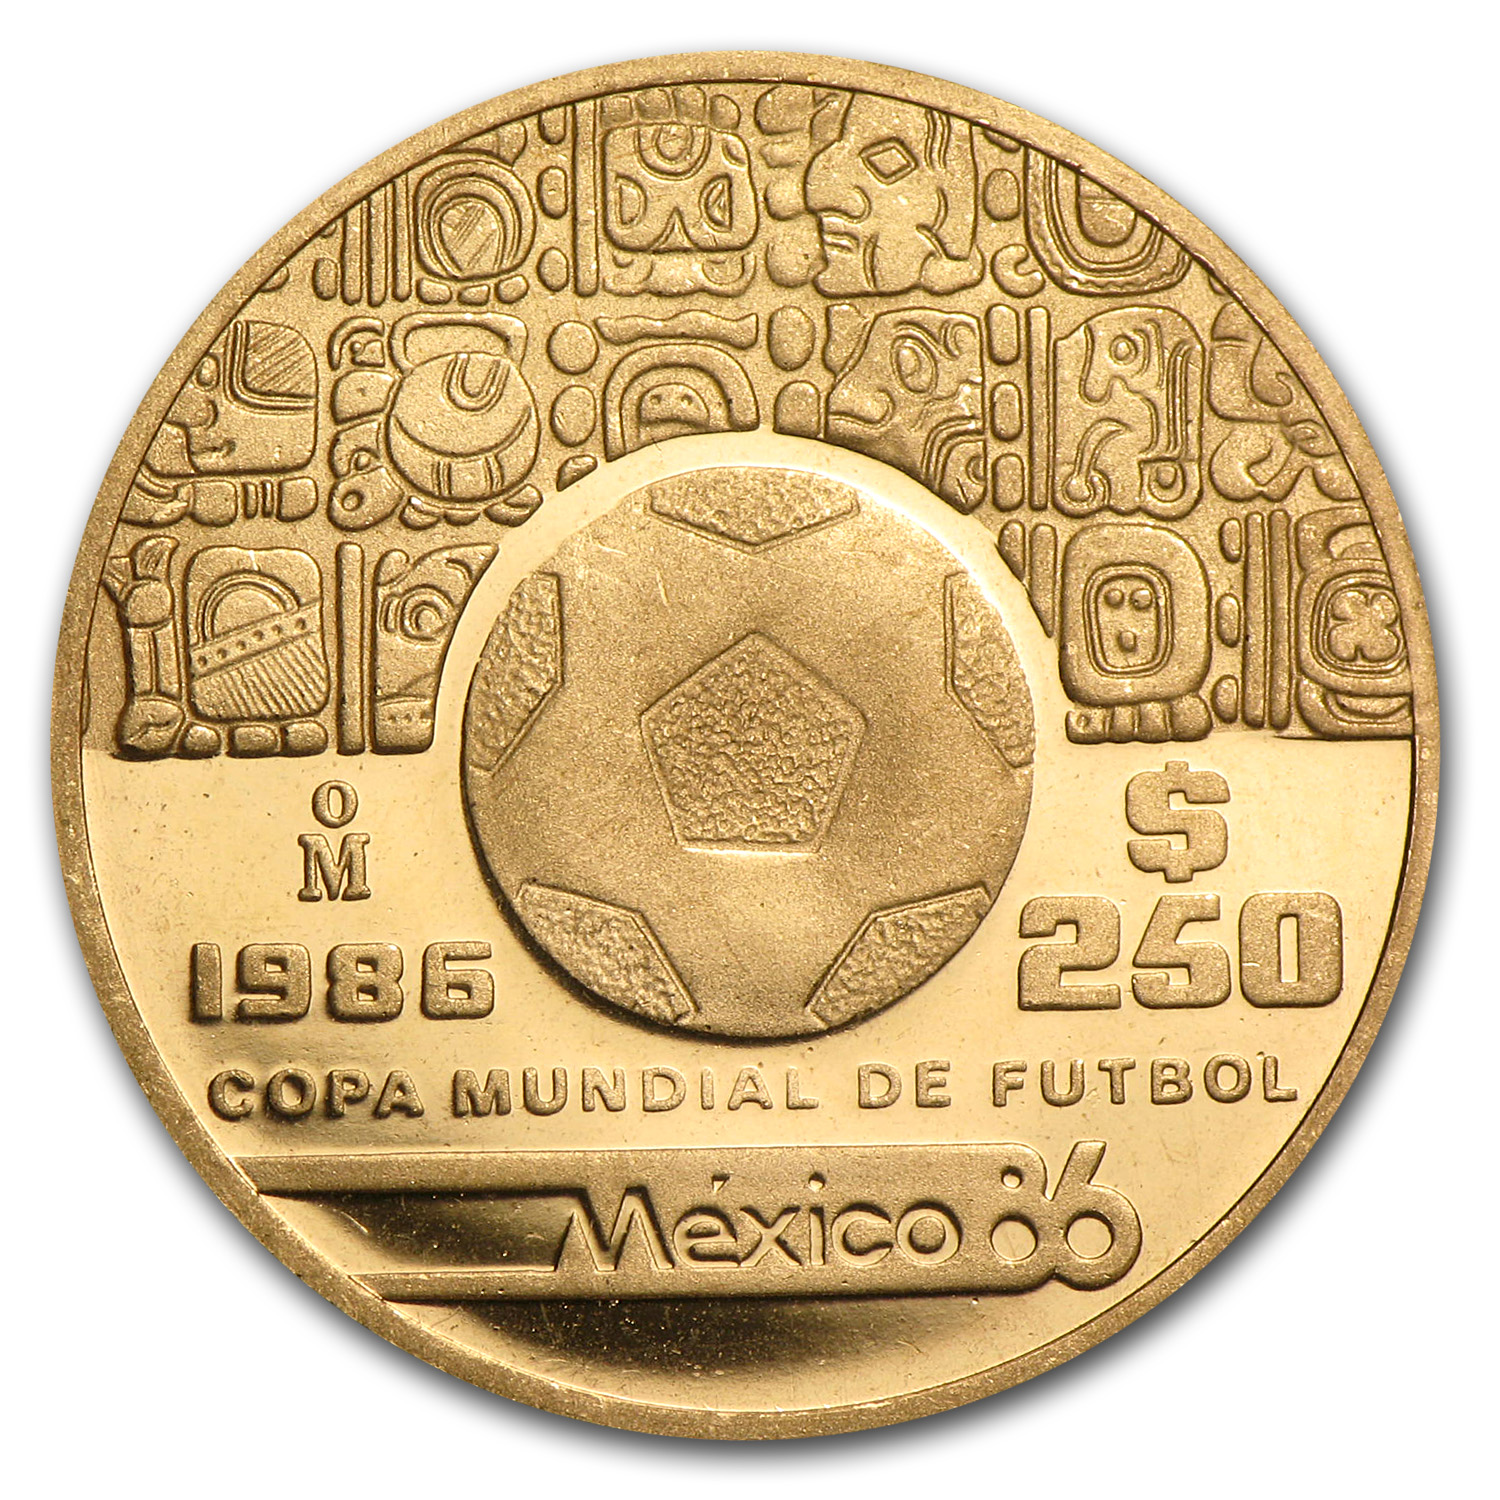 1985 or 1986 Mexico Gold 250 Pesos (Proof)